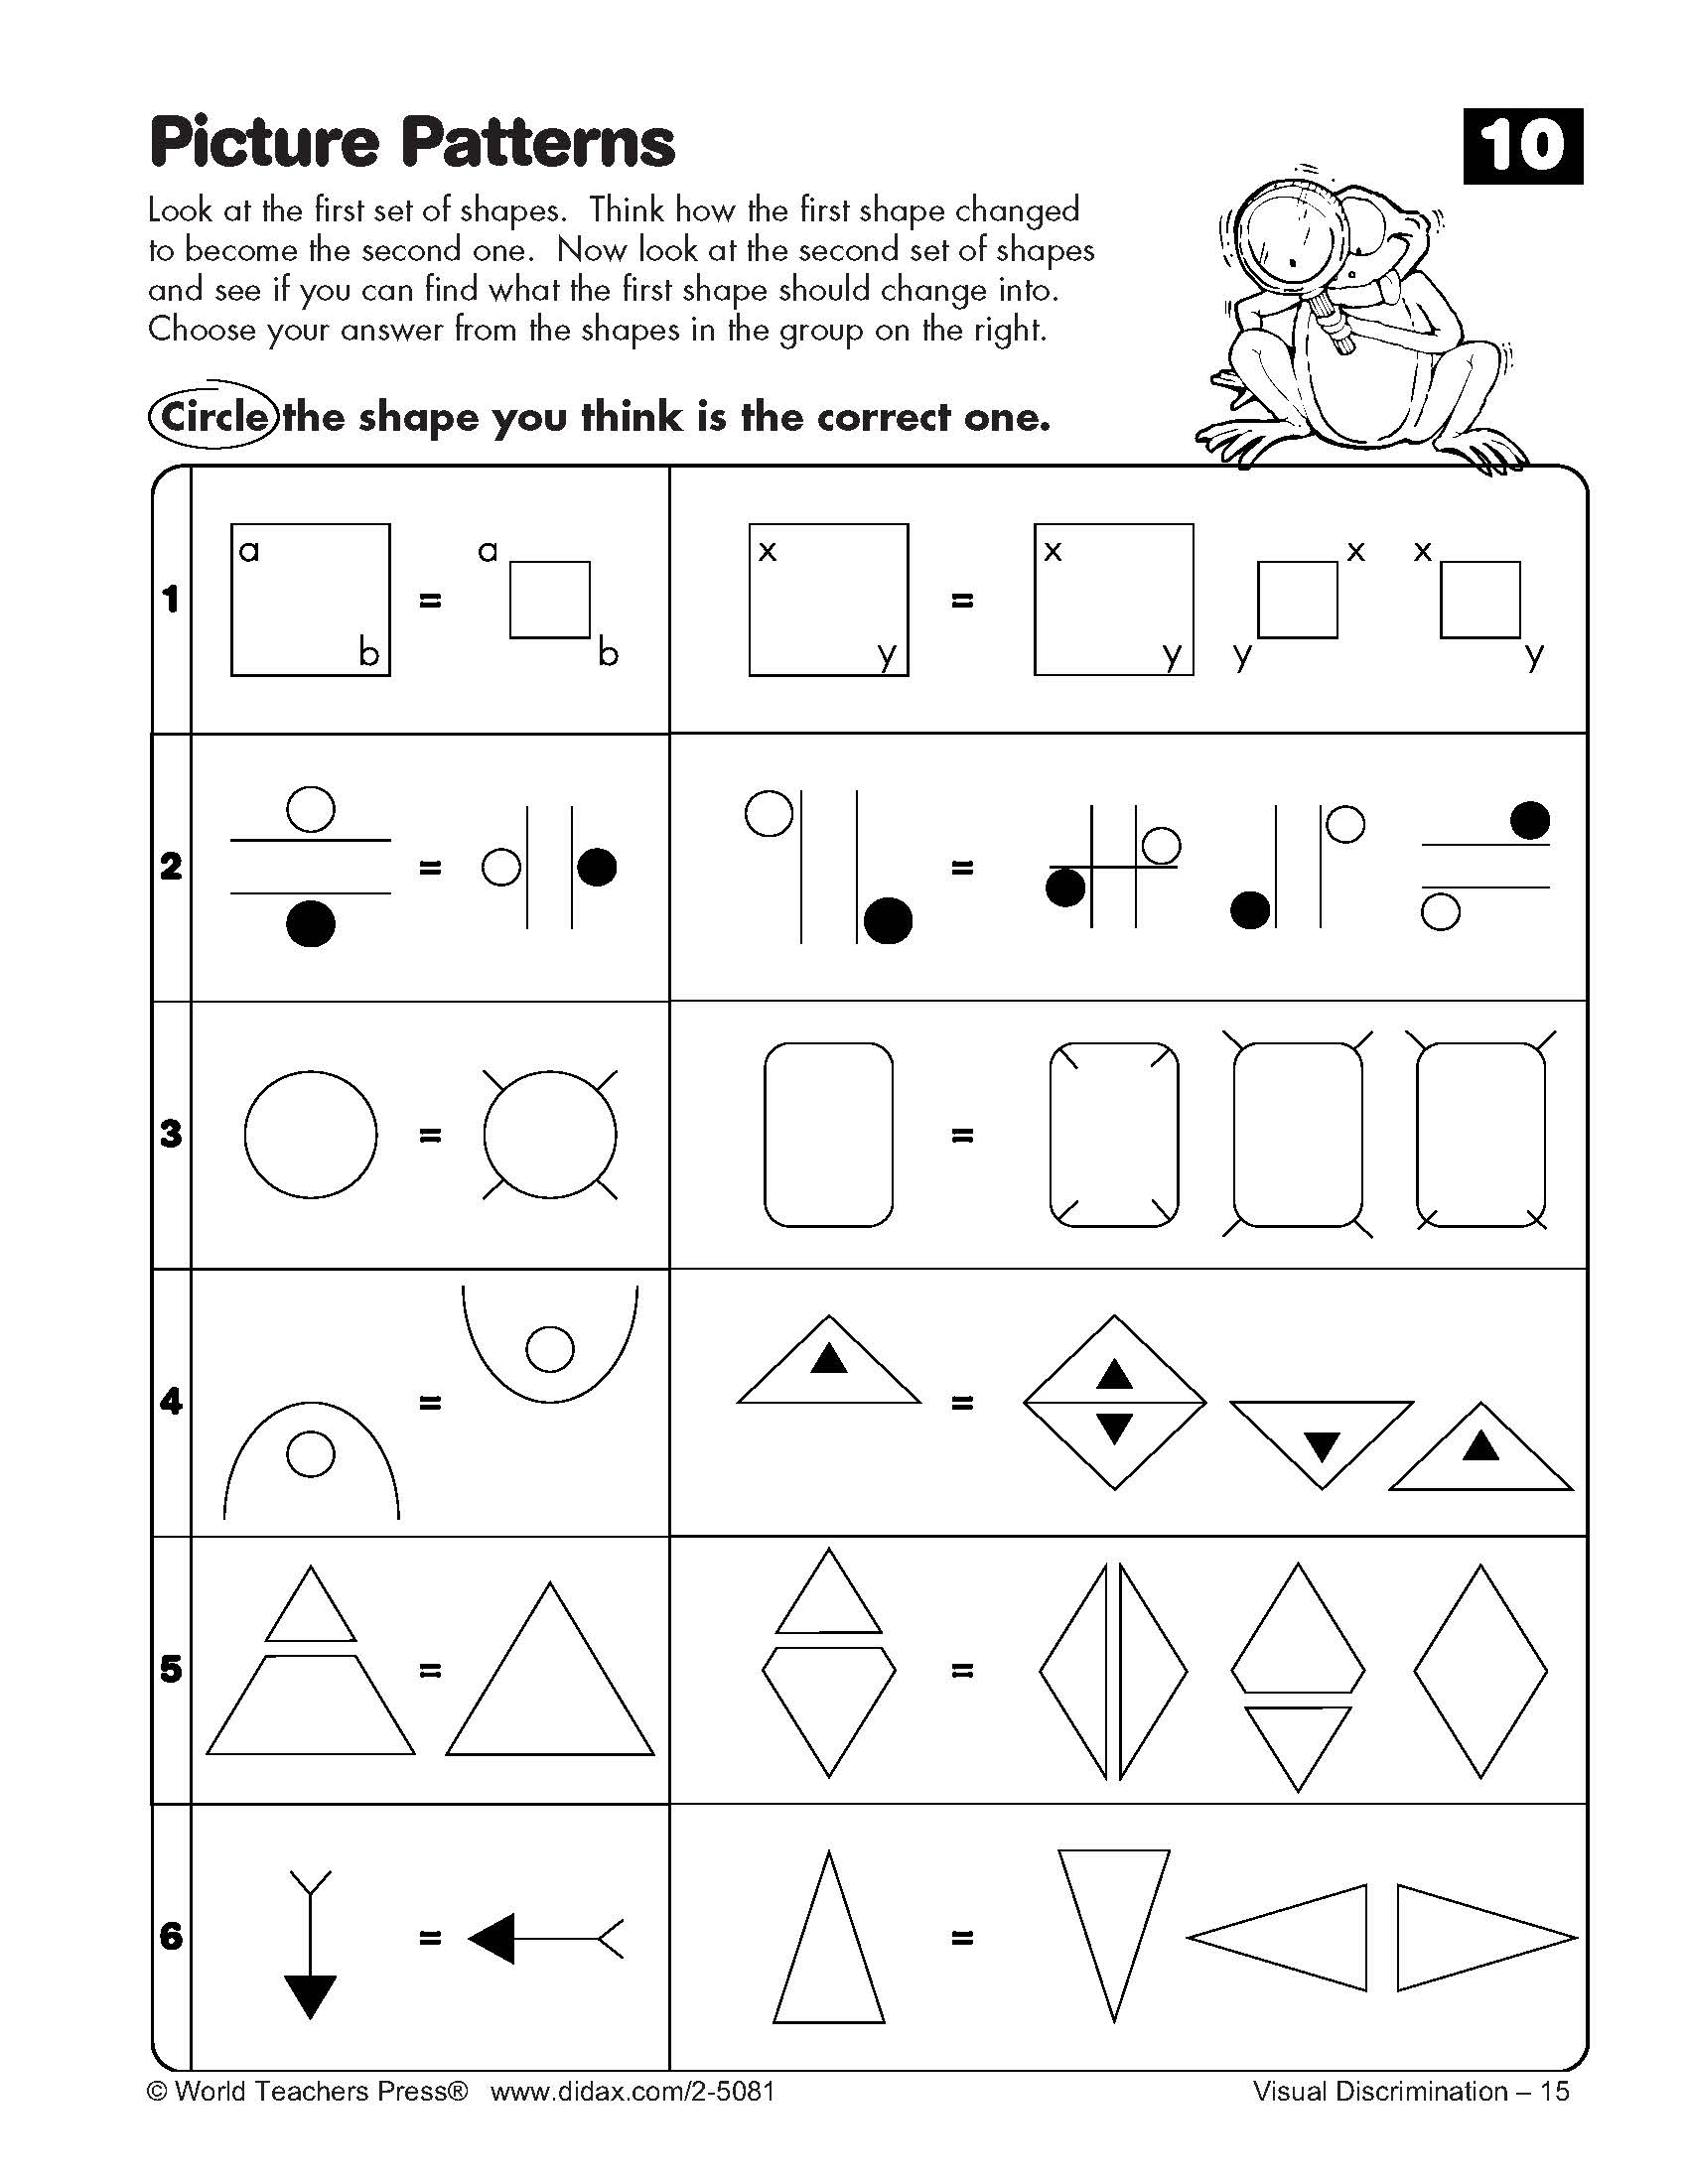 Critical Thinking Skills Worksheets Grade 4 Fast Online Help